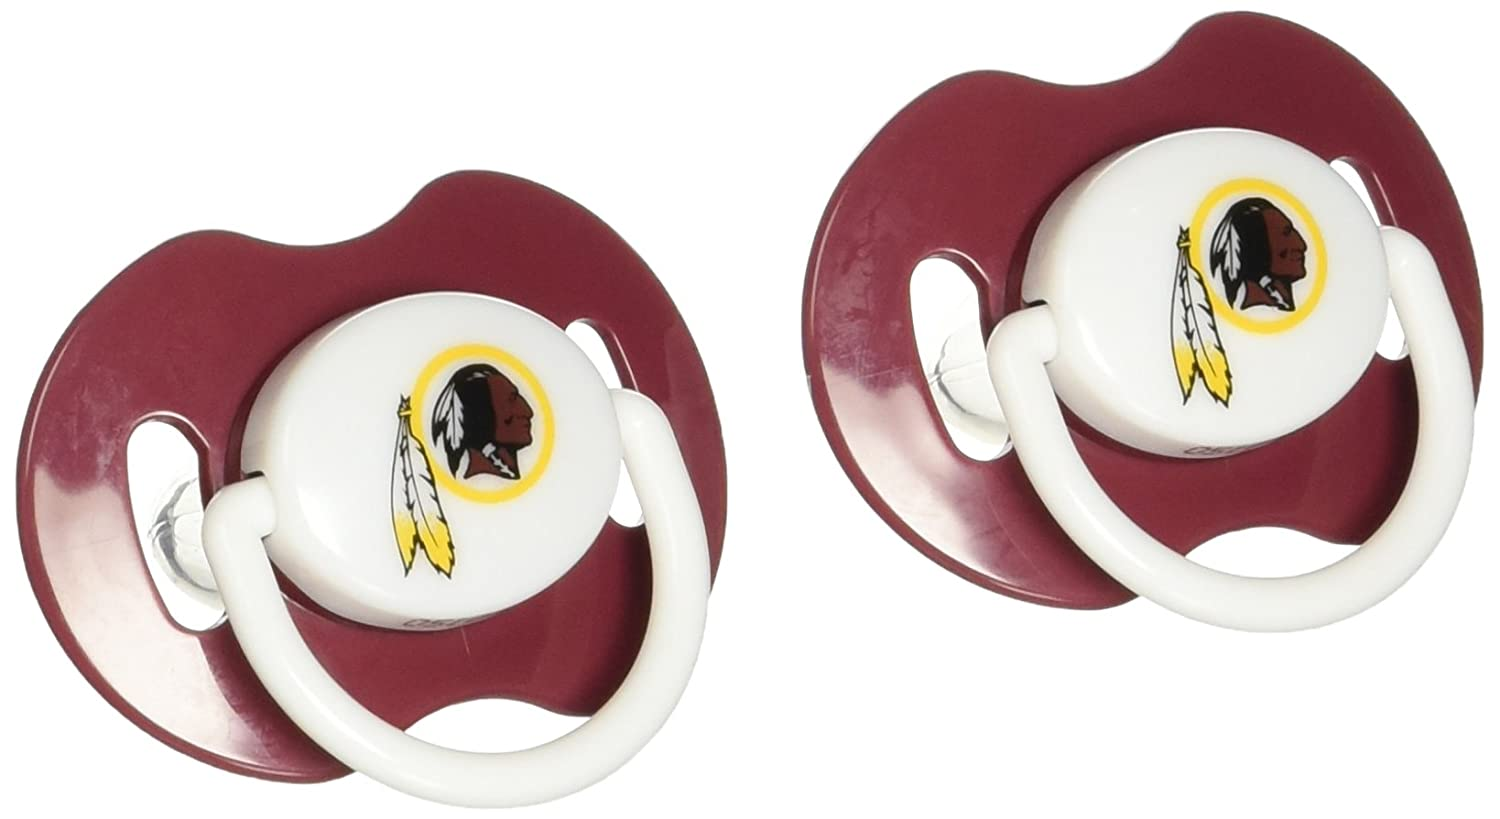 Amazon.com: NFL Washington Redskins 2 Pack Chupete: Sports ...